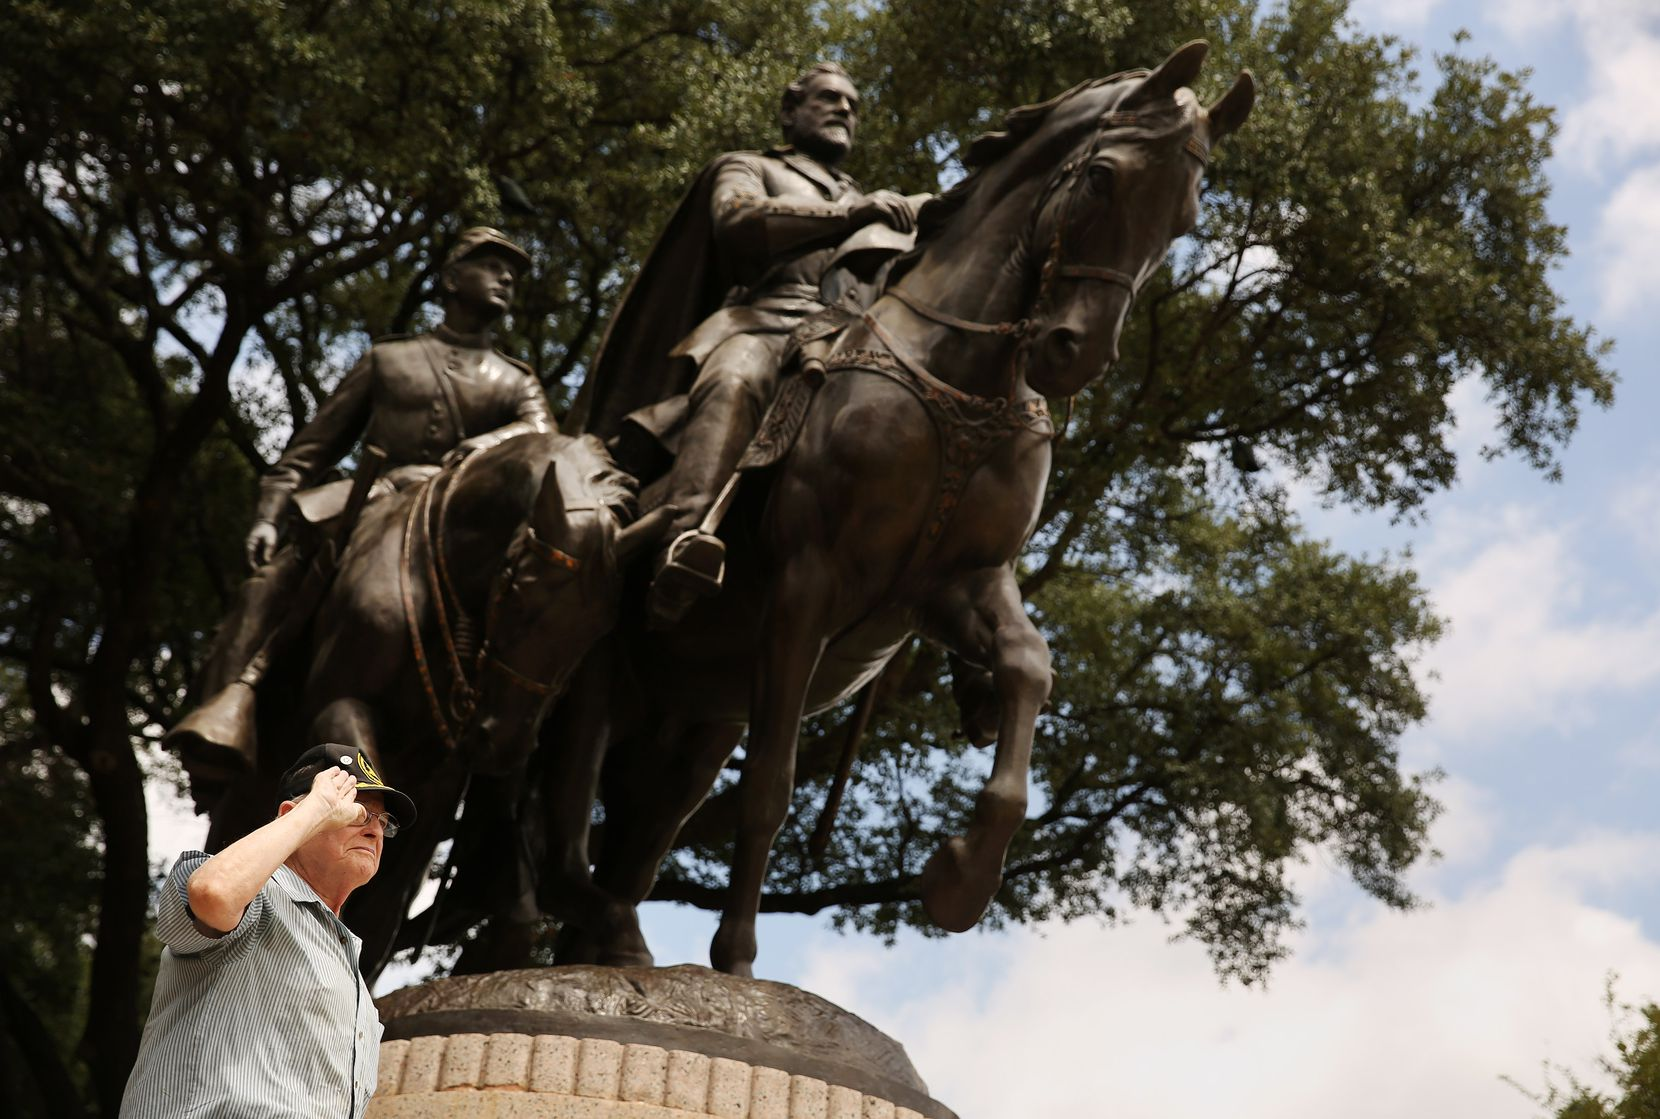 """A visitor gives the """"palm out"""" Confederate salute while being photographed at Robert E. Lee Park in the Oak Lawn neighborhood of Dallas Aug. 16, 2017."""